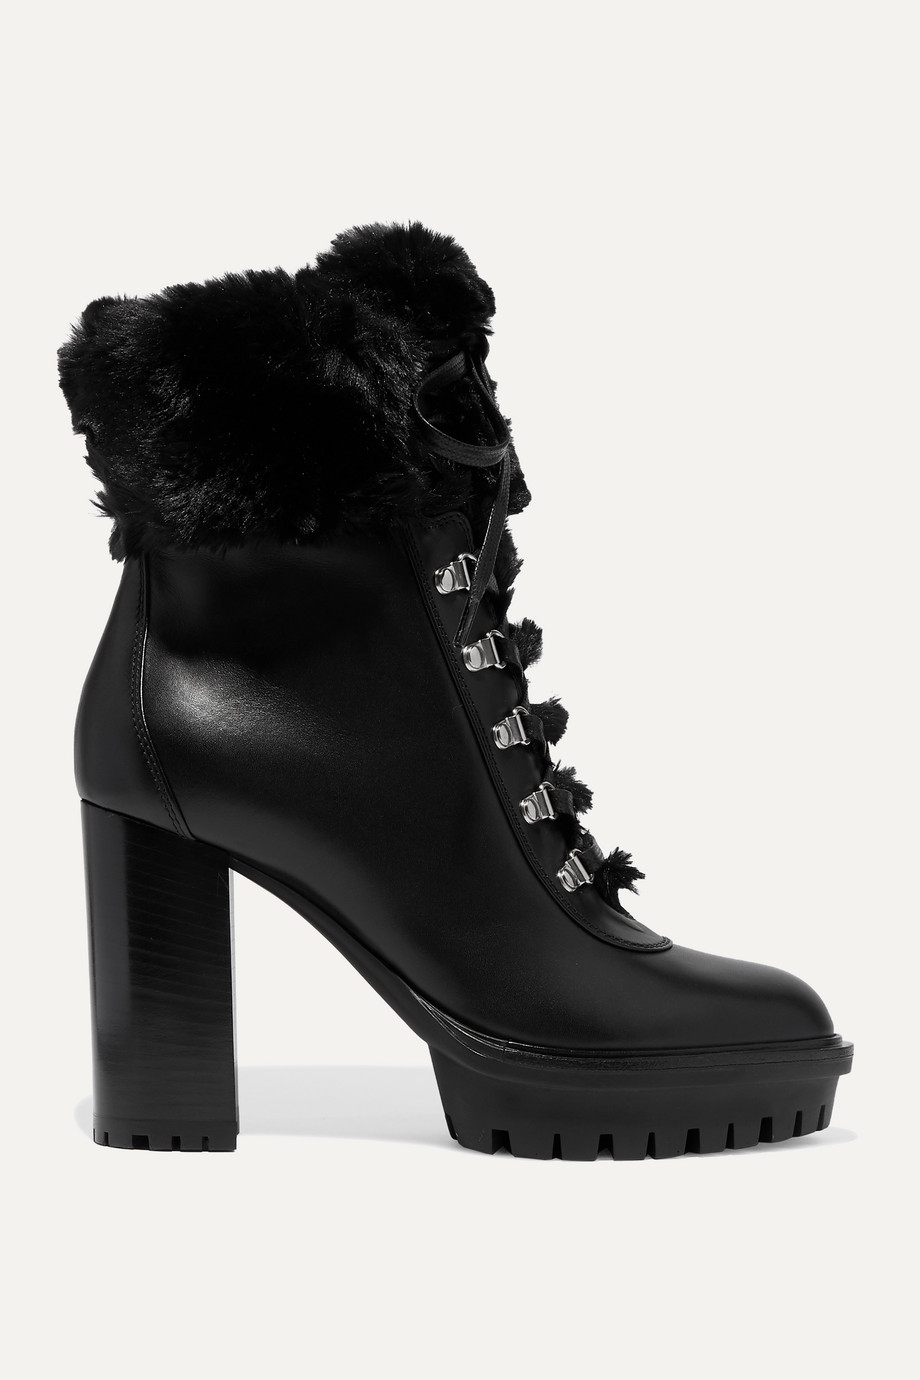 Gianvito Rossi 100 faux fur-trimmed leather platform ankle boots